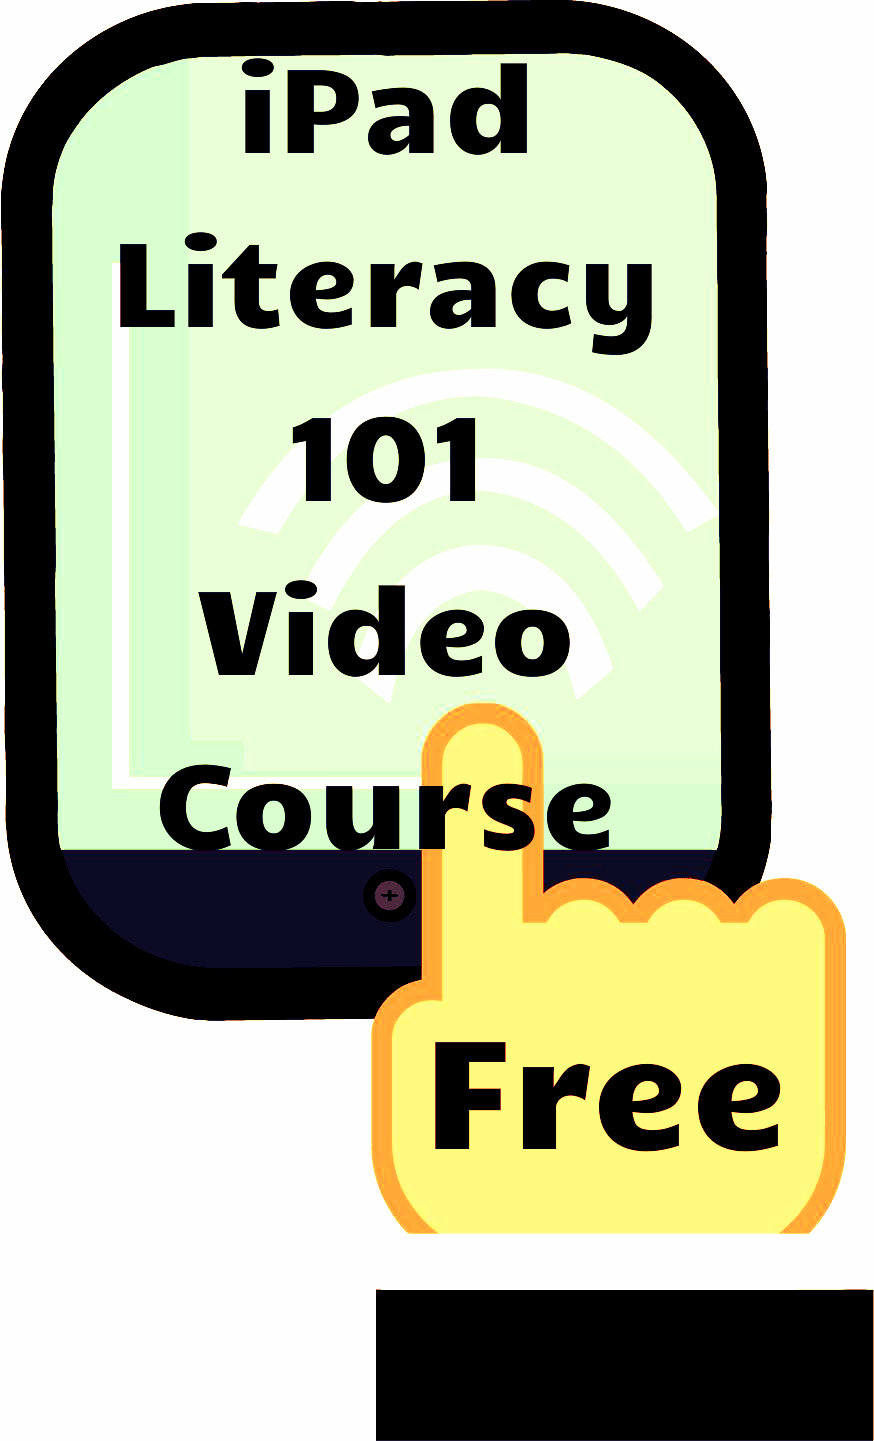 Online iPad training course